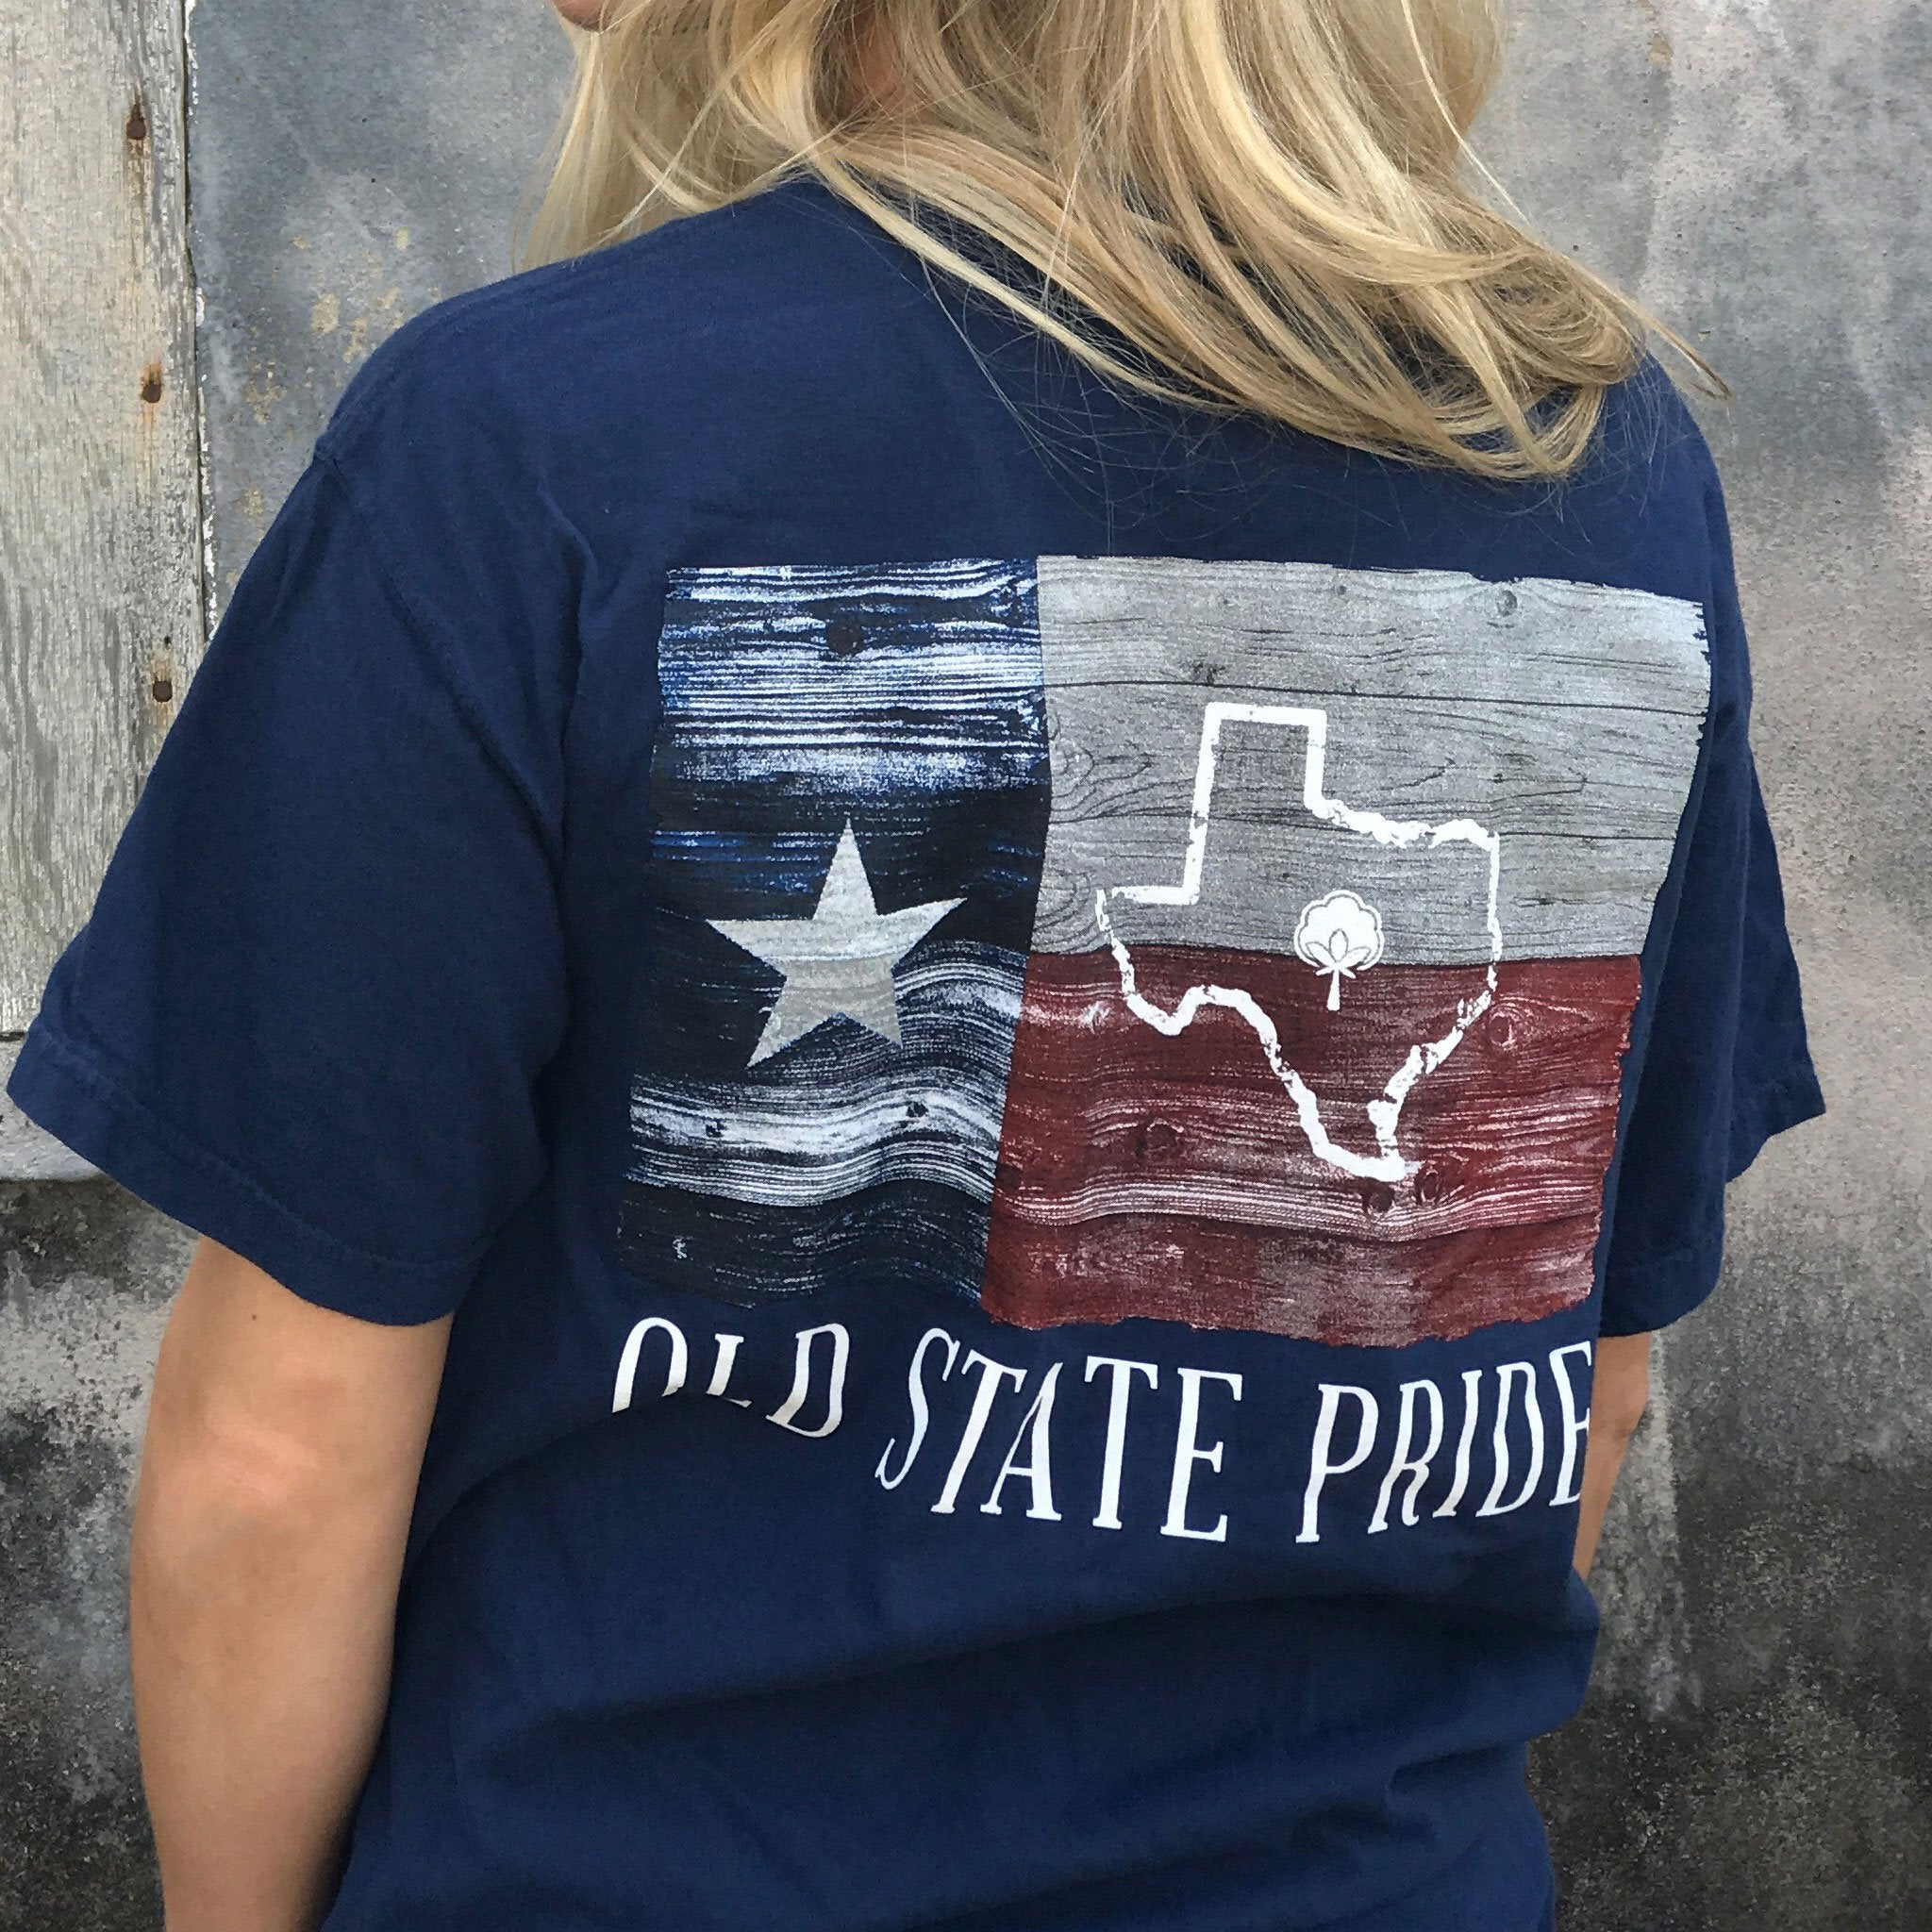 ... Old State Pride Small   Navy Texas State Flag Tee Shirt ... f5d0a59b50d2